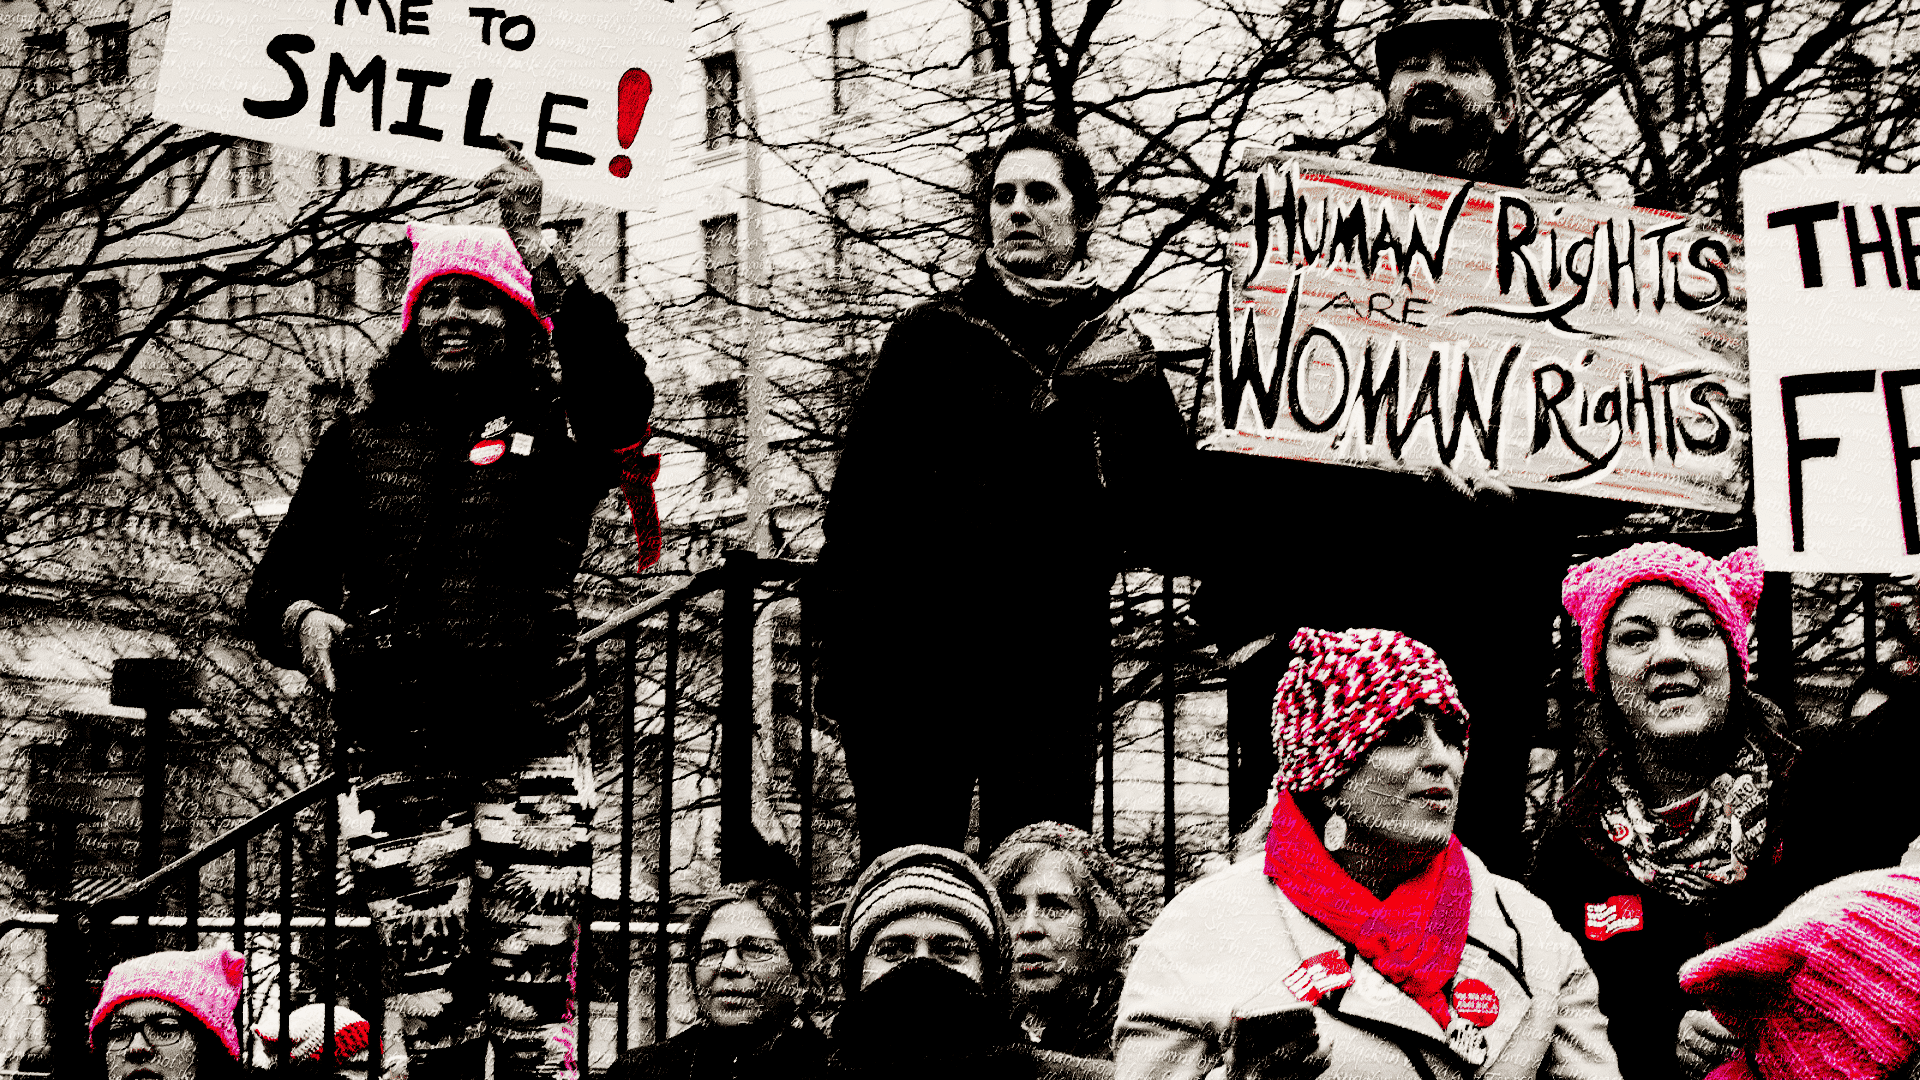 What Men Stand To Gain From the Equal Rights Amendment / ERA / Women's March.